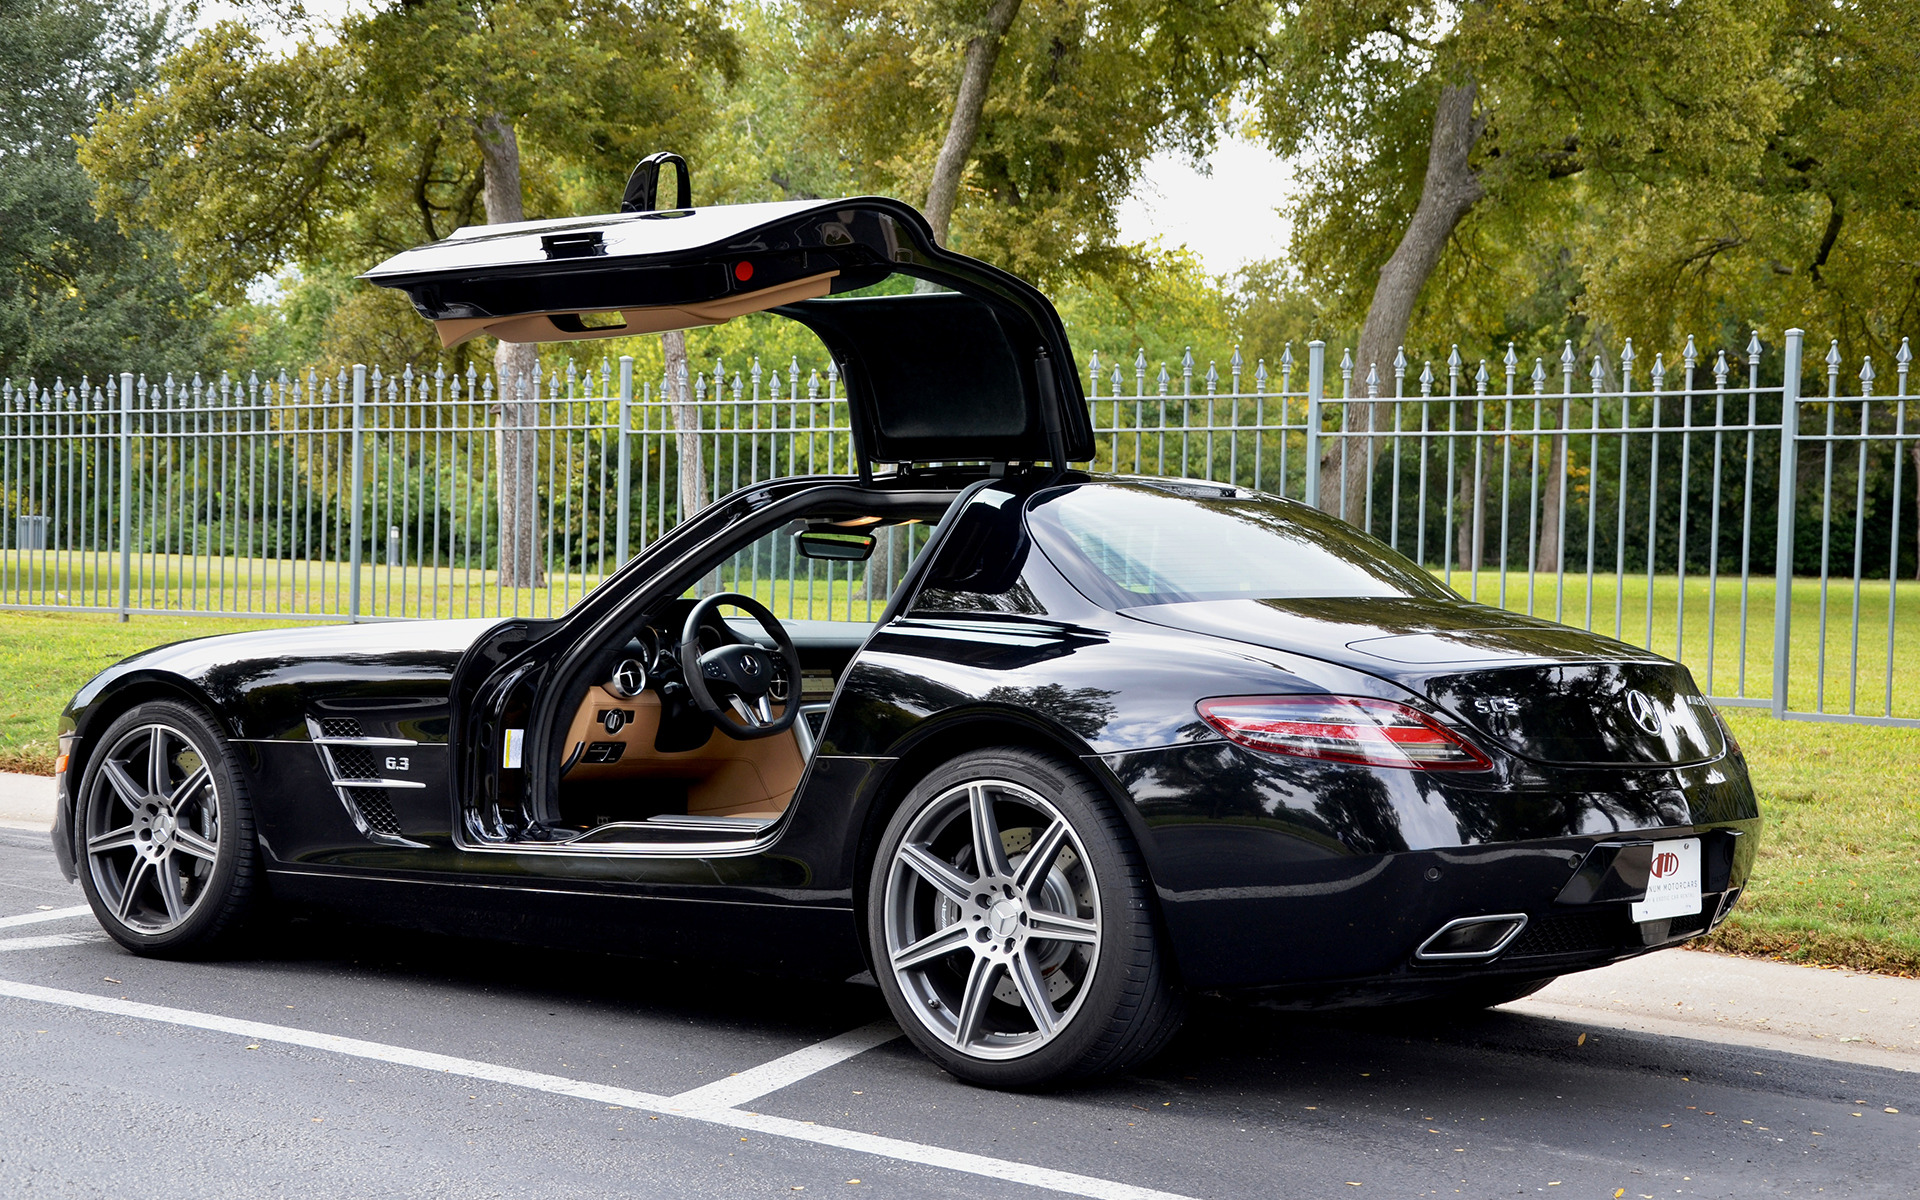 2011 mercedes benz sls amg stock 135995 for sale near for Mercedes benz service dallas tx